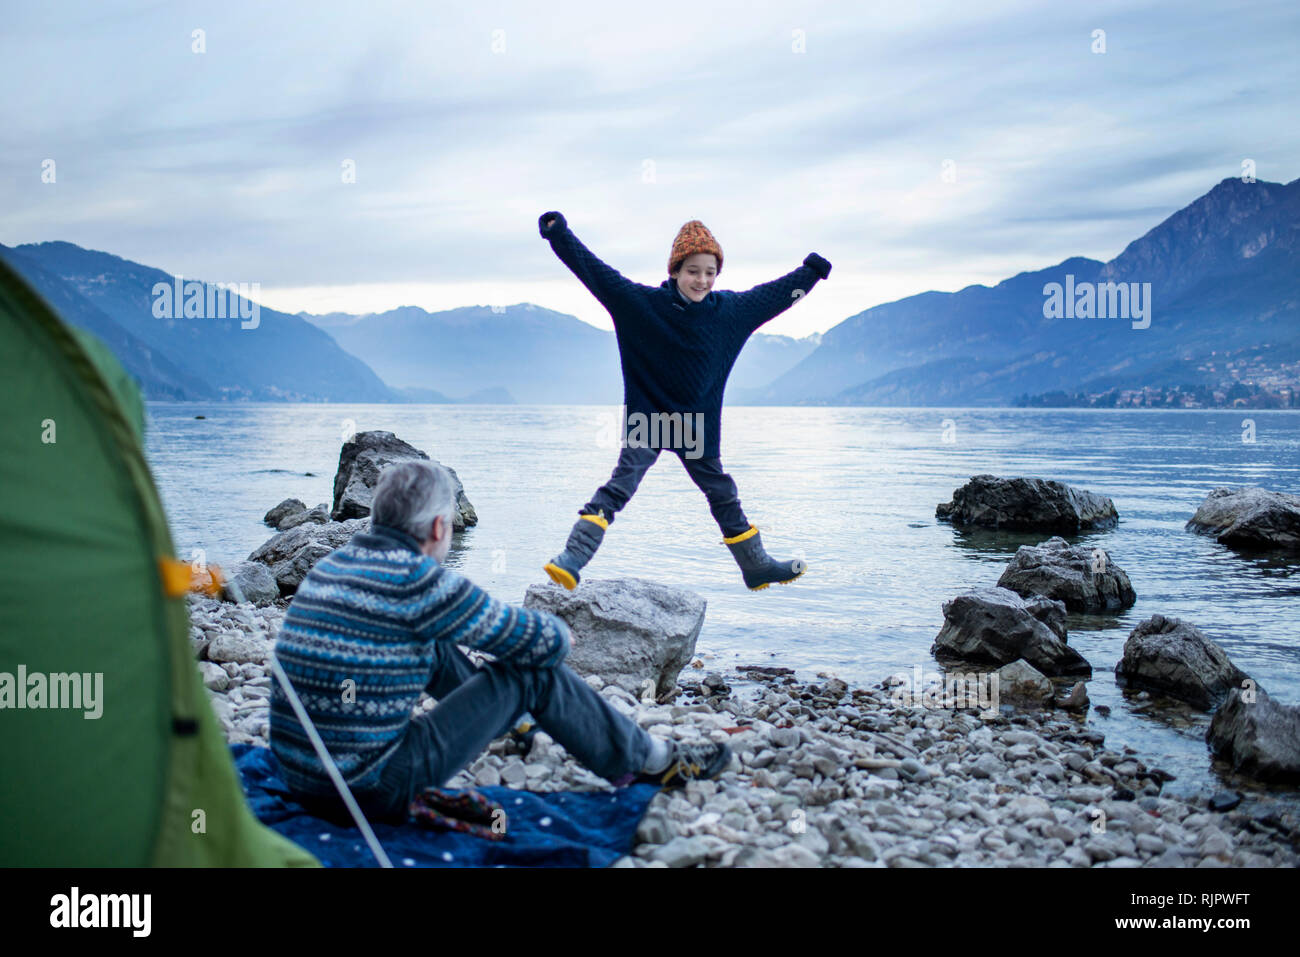 Father watching son doing star jump by lakeside, Onno, Lombardy, Italy - Stock Image